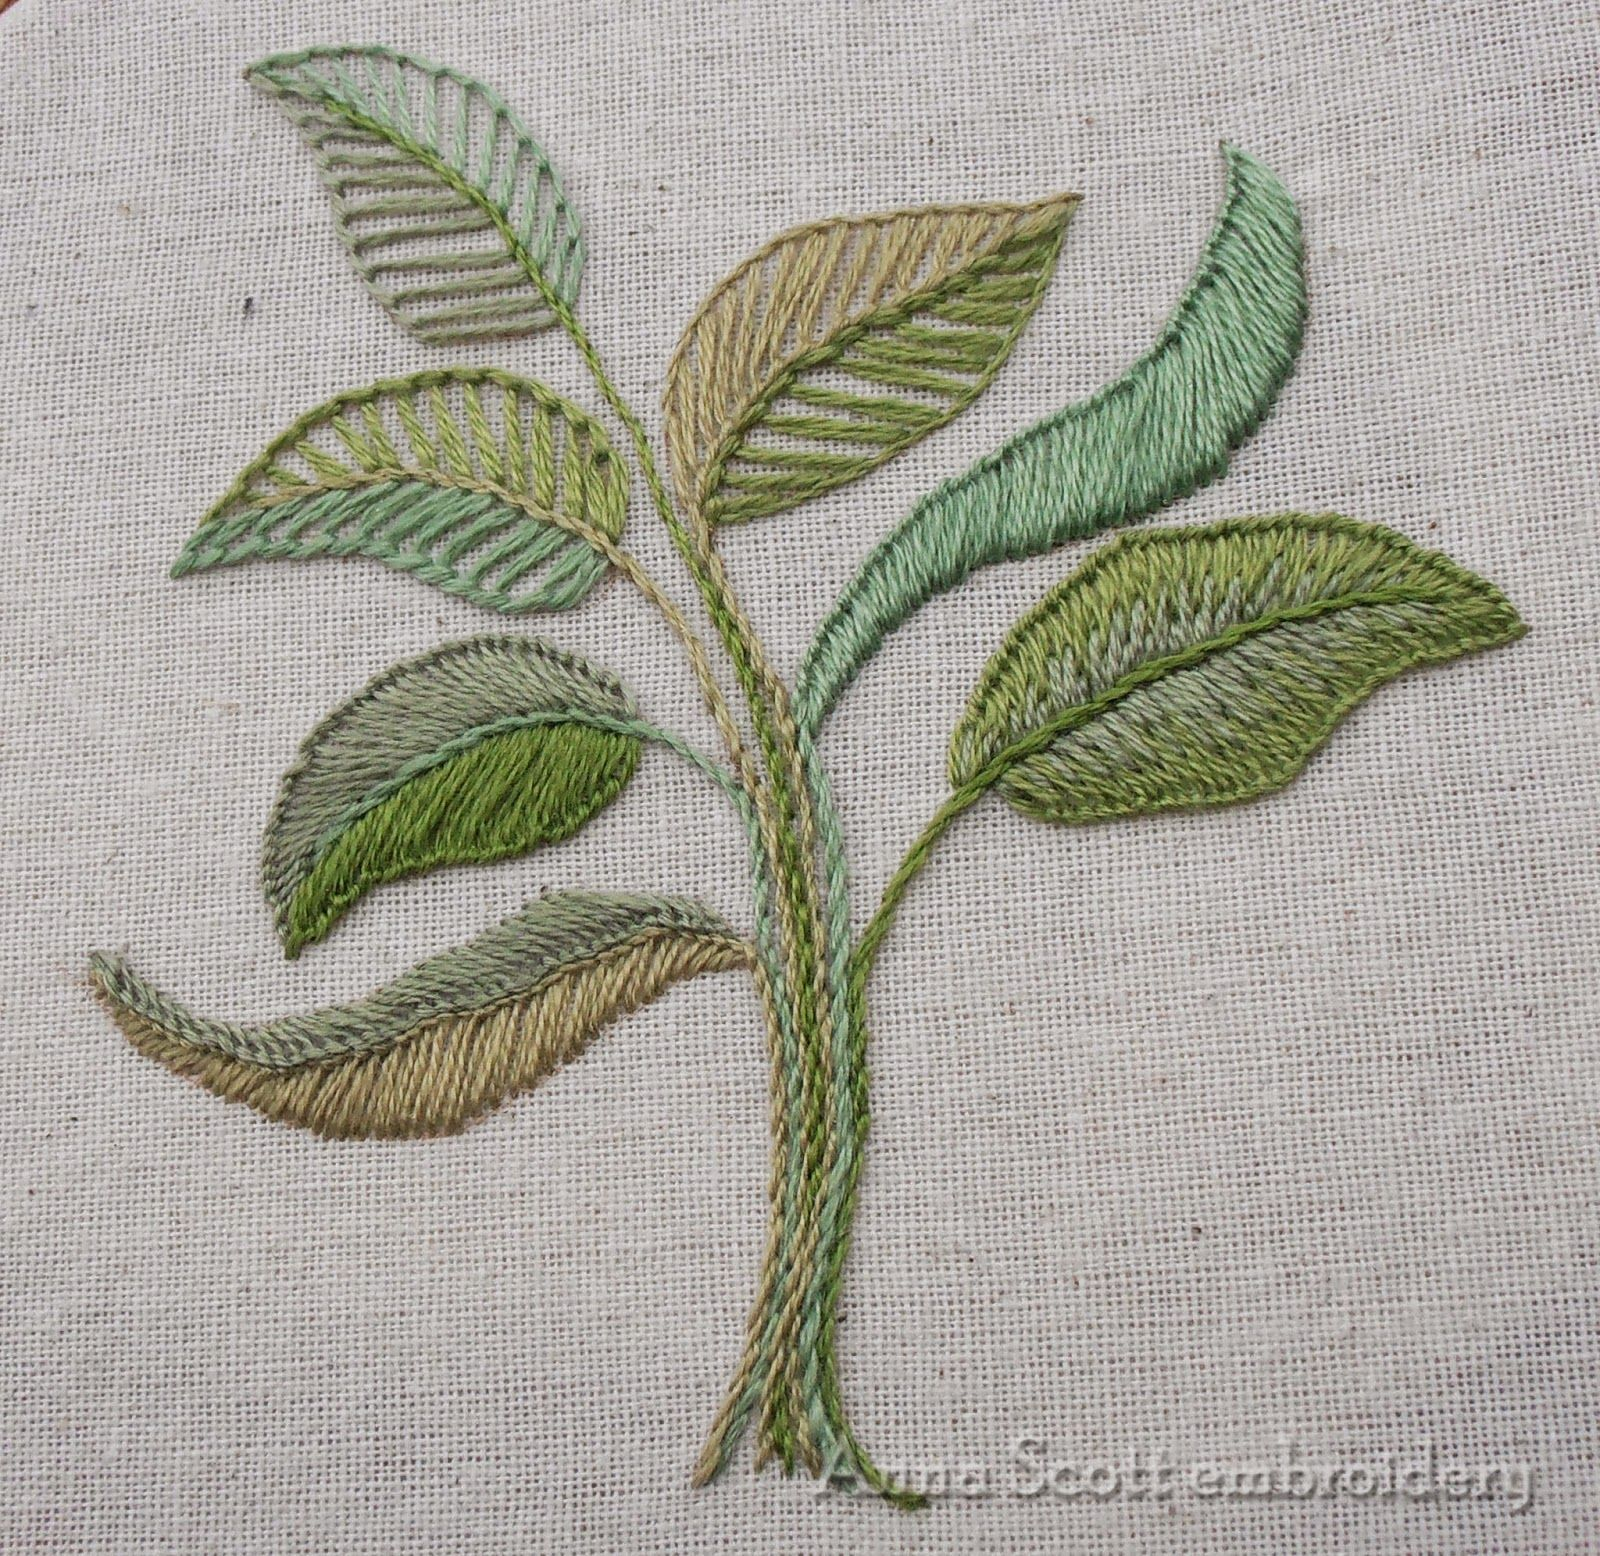 Anna scott blanket stitch leaves part two embroidery